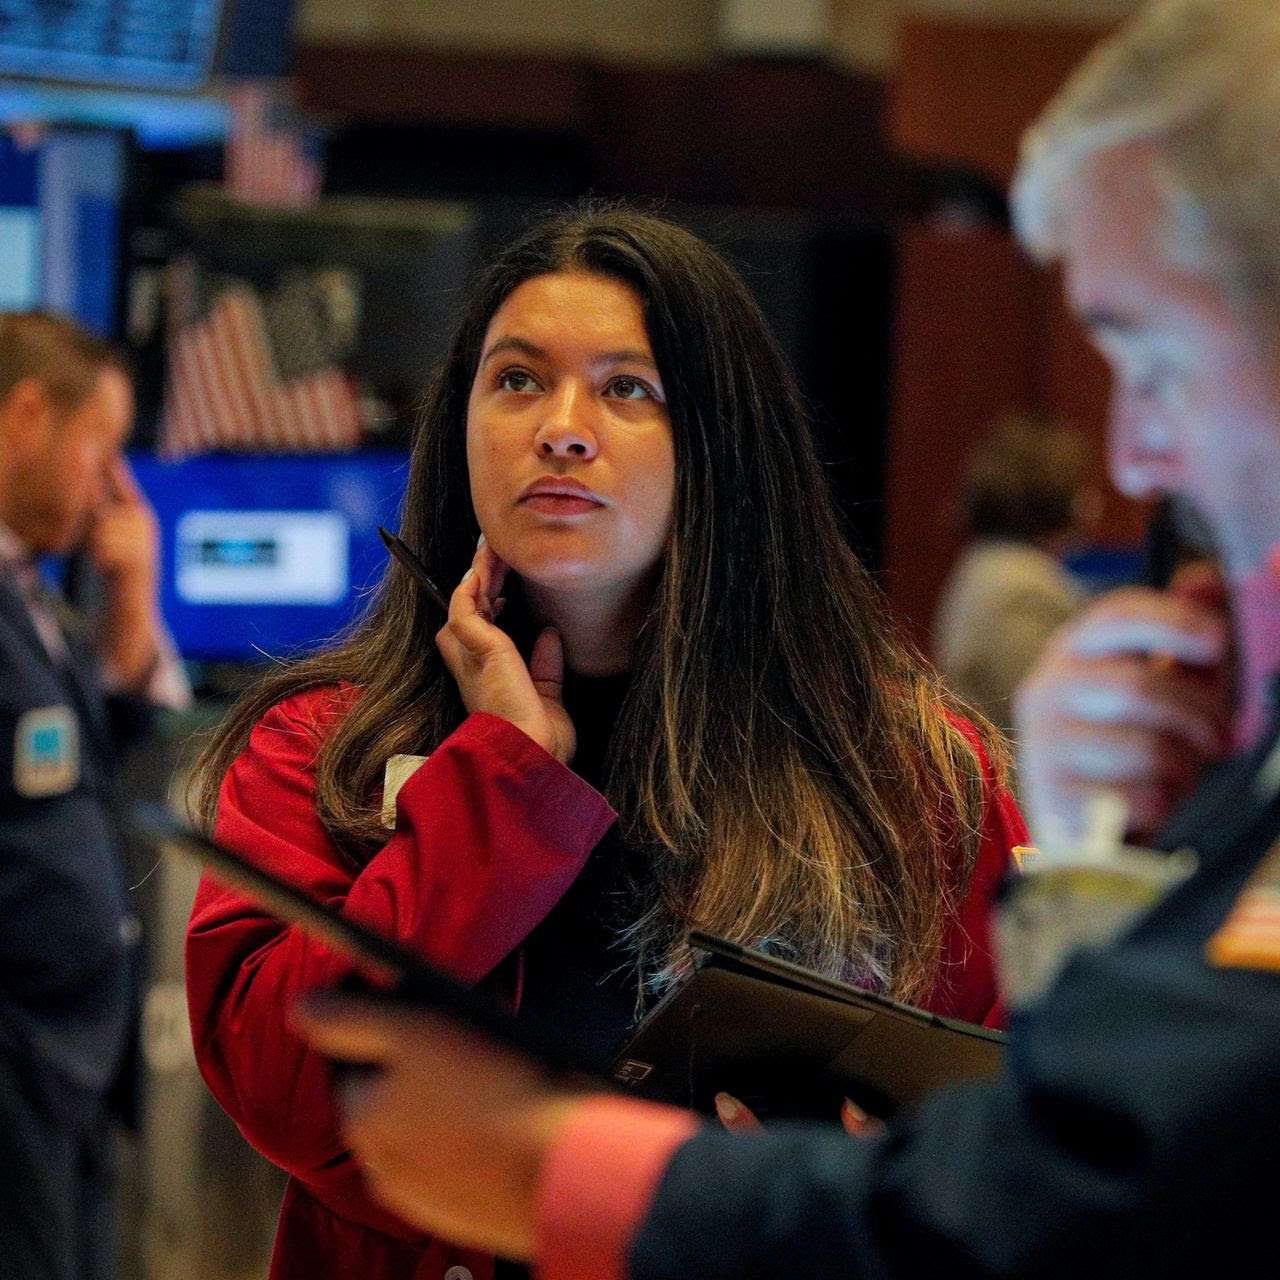 Stock Futures Rise Ahead of Bank Earnings